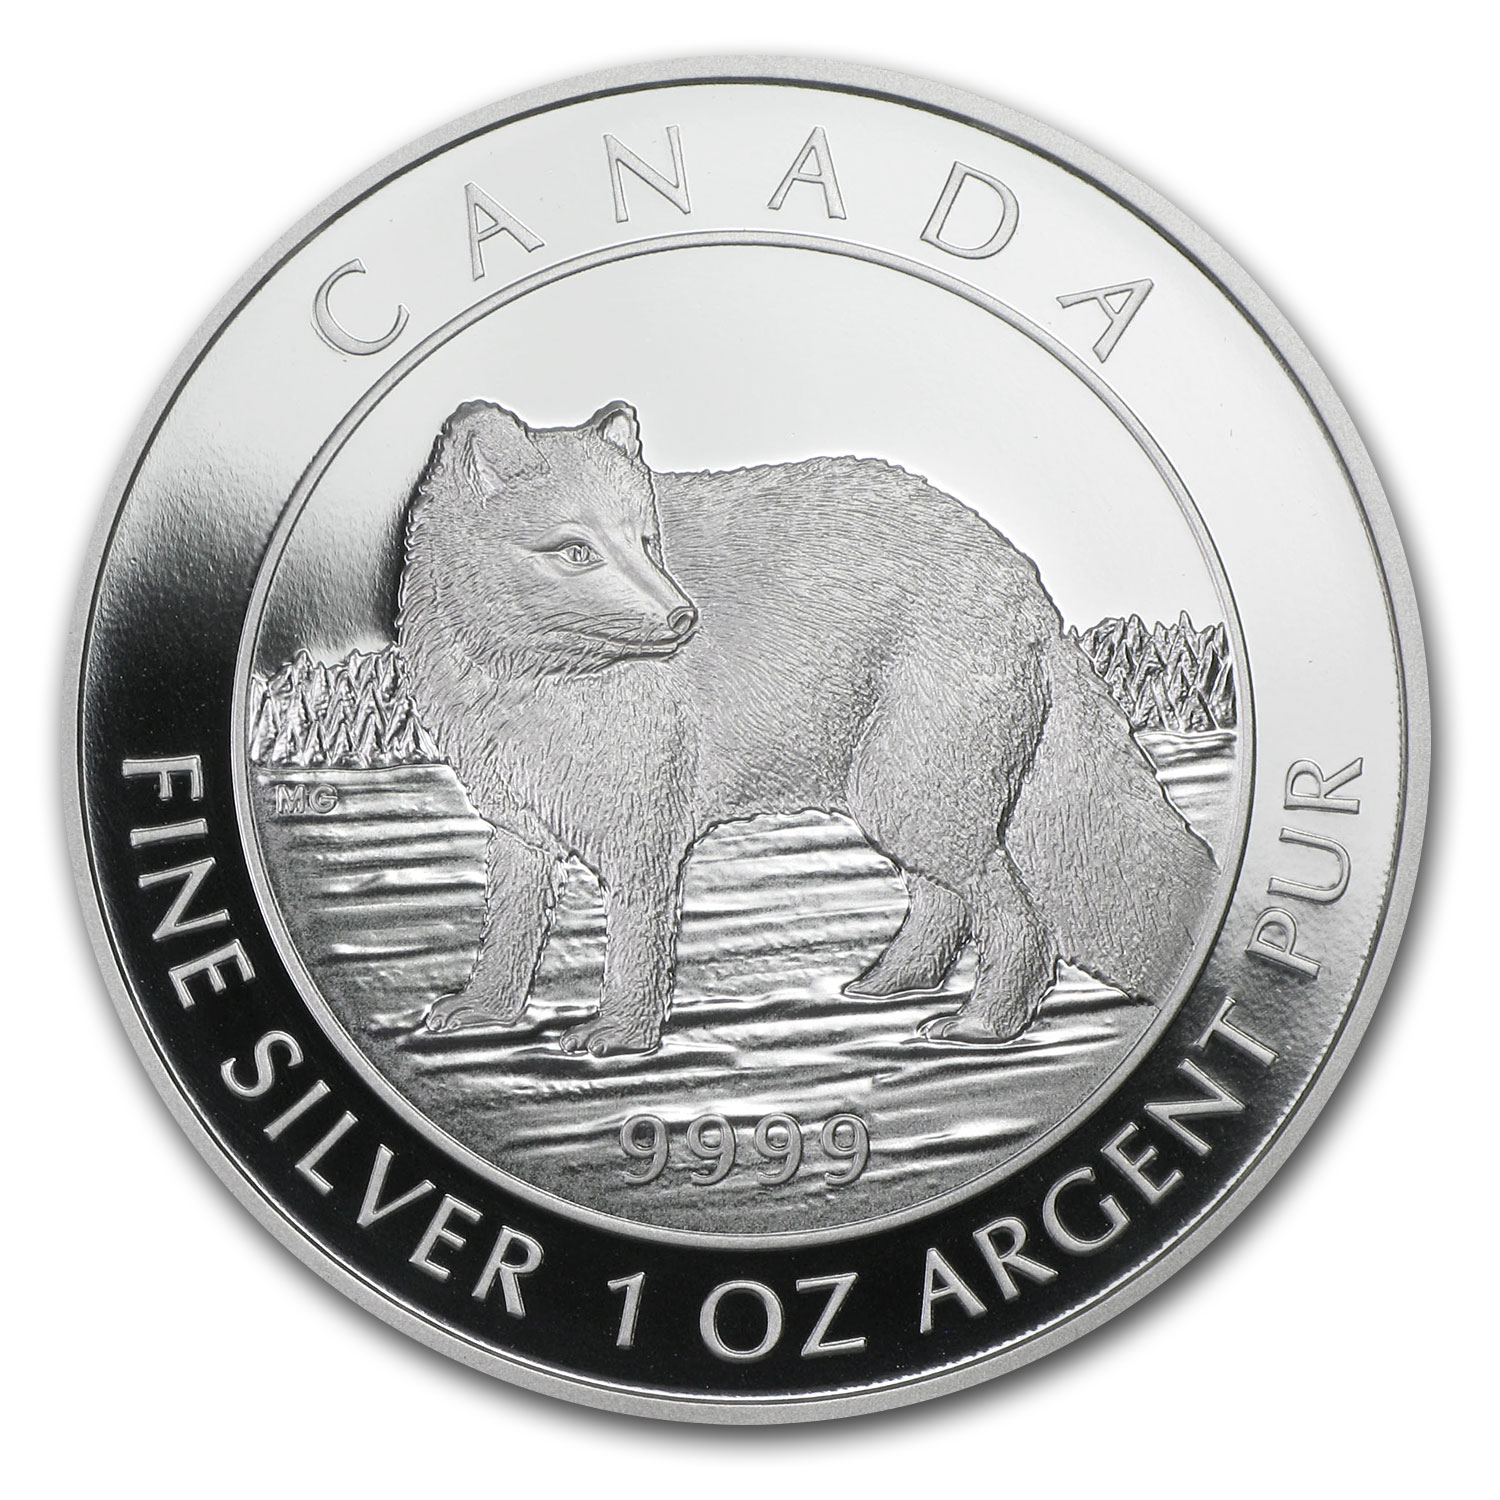 2014 1 oz Silver Canadian $5 Coin - Arctic Fox (W/Box and COA)